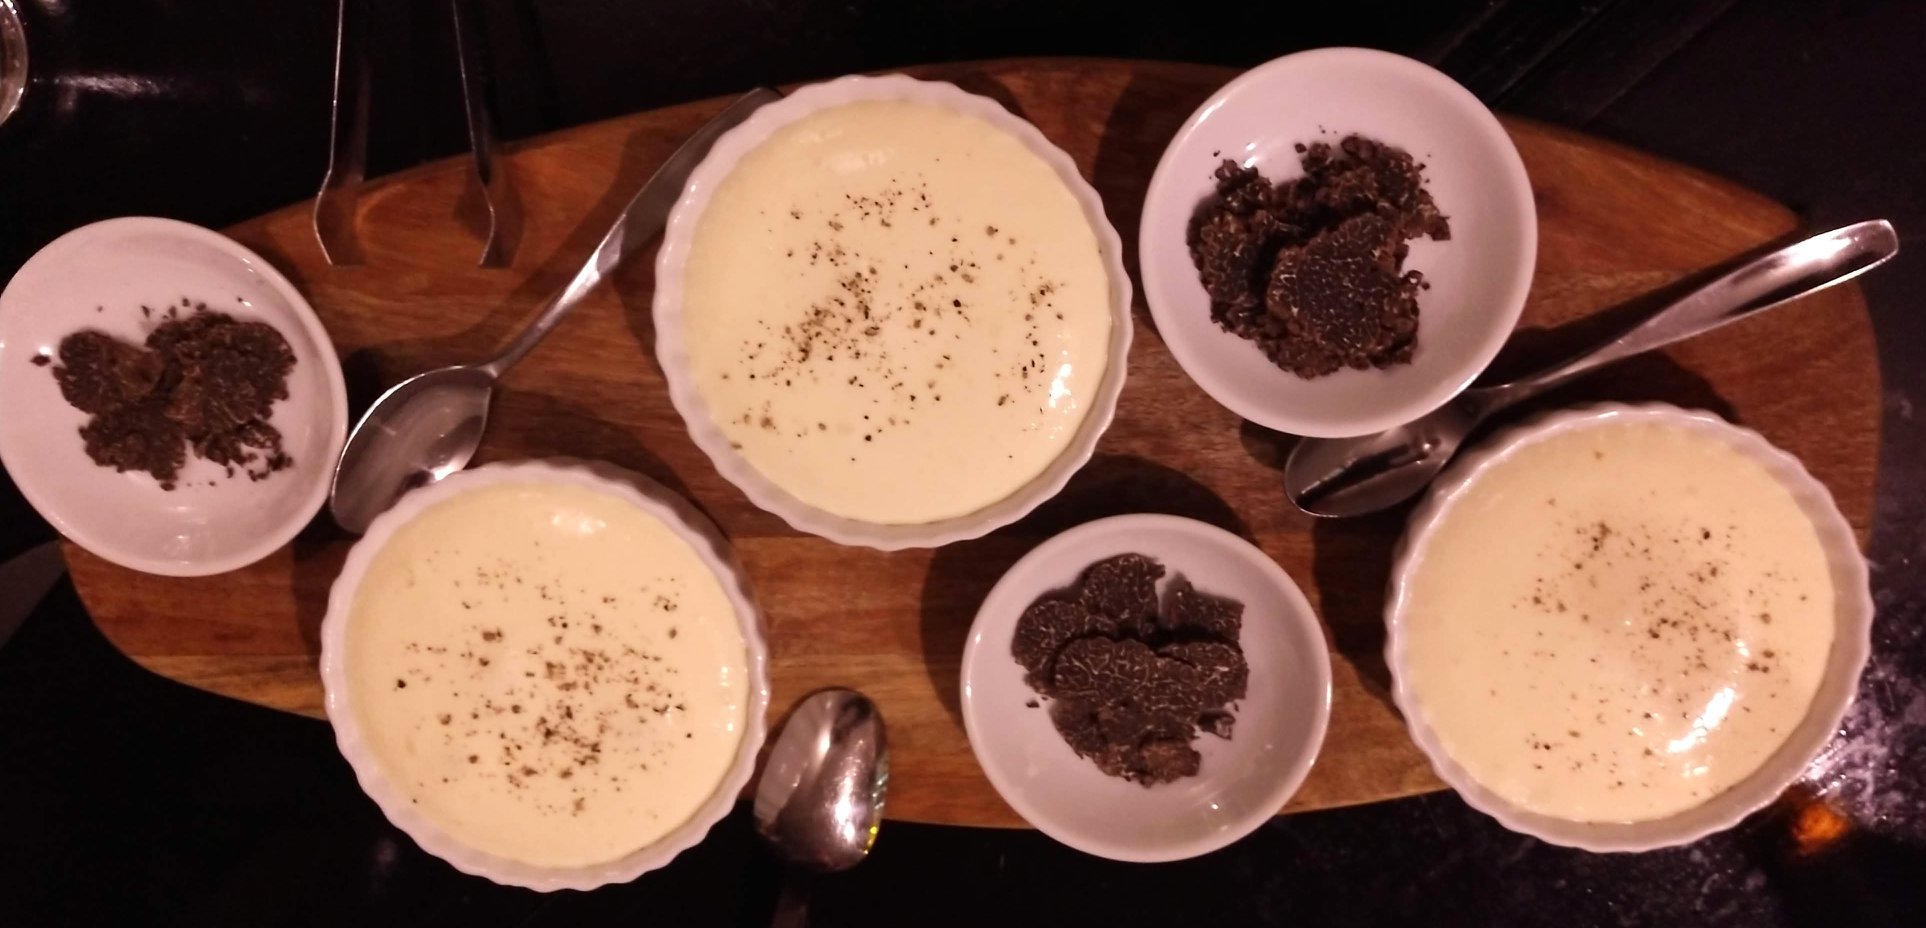 truffle dishes on white plates